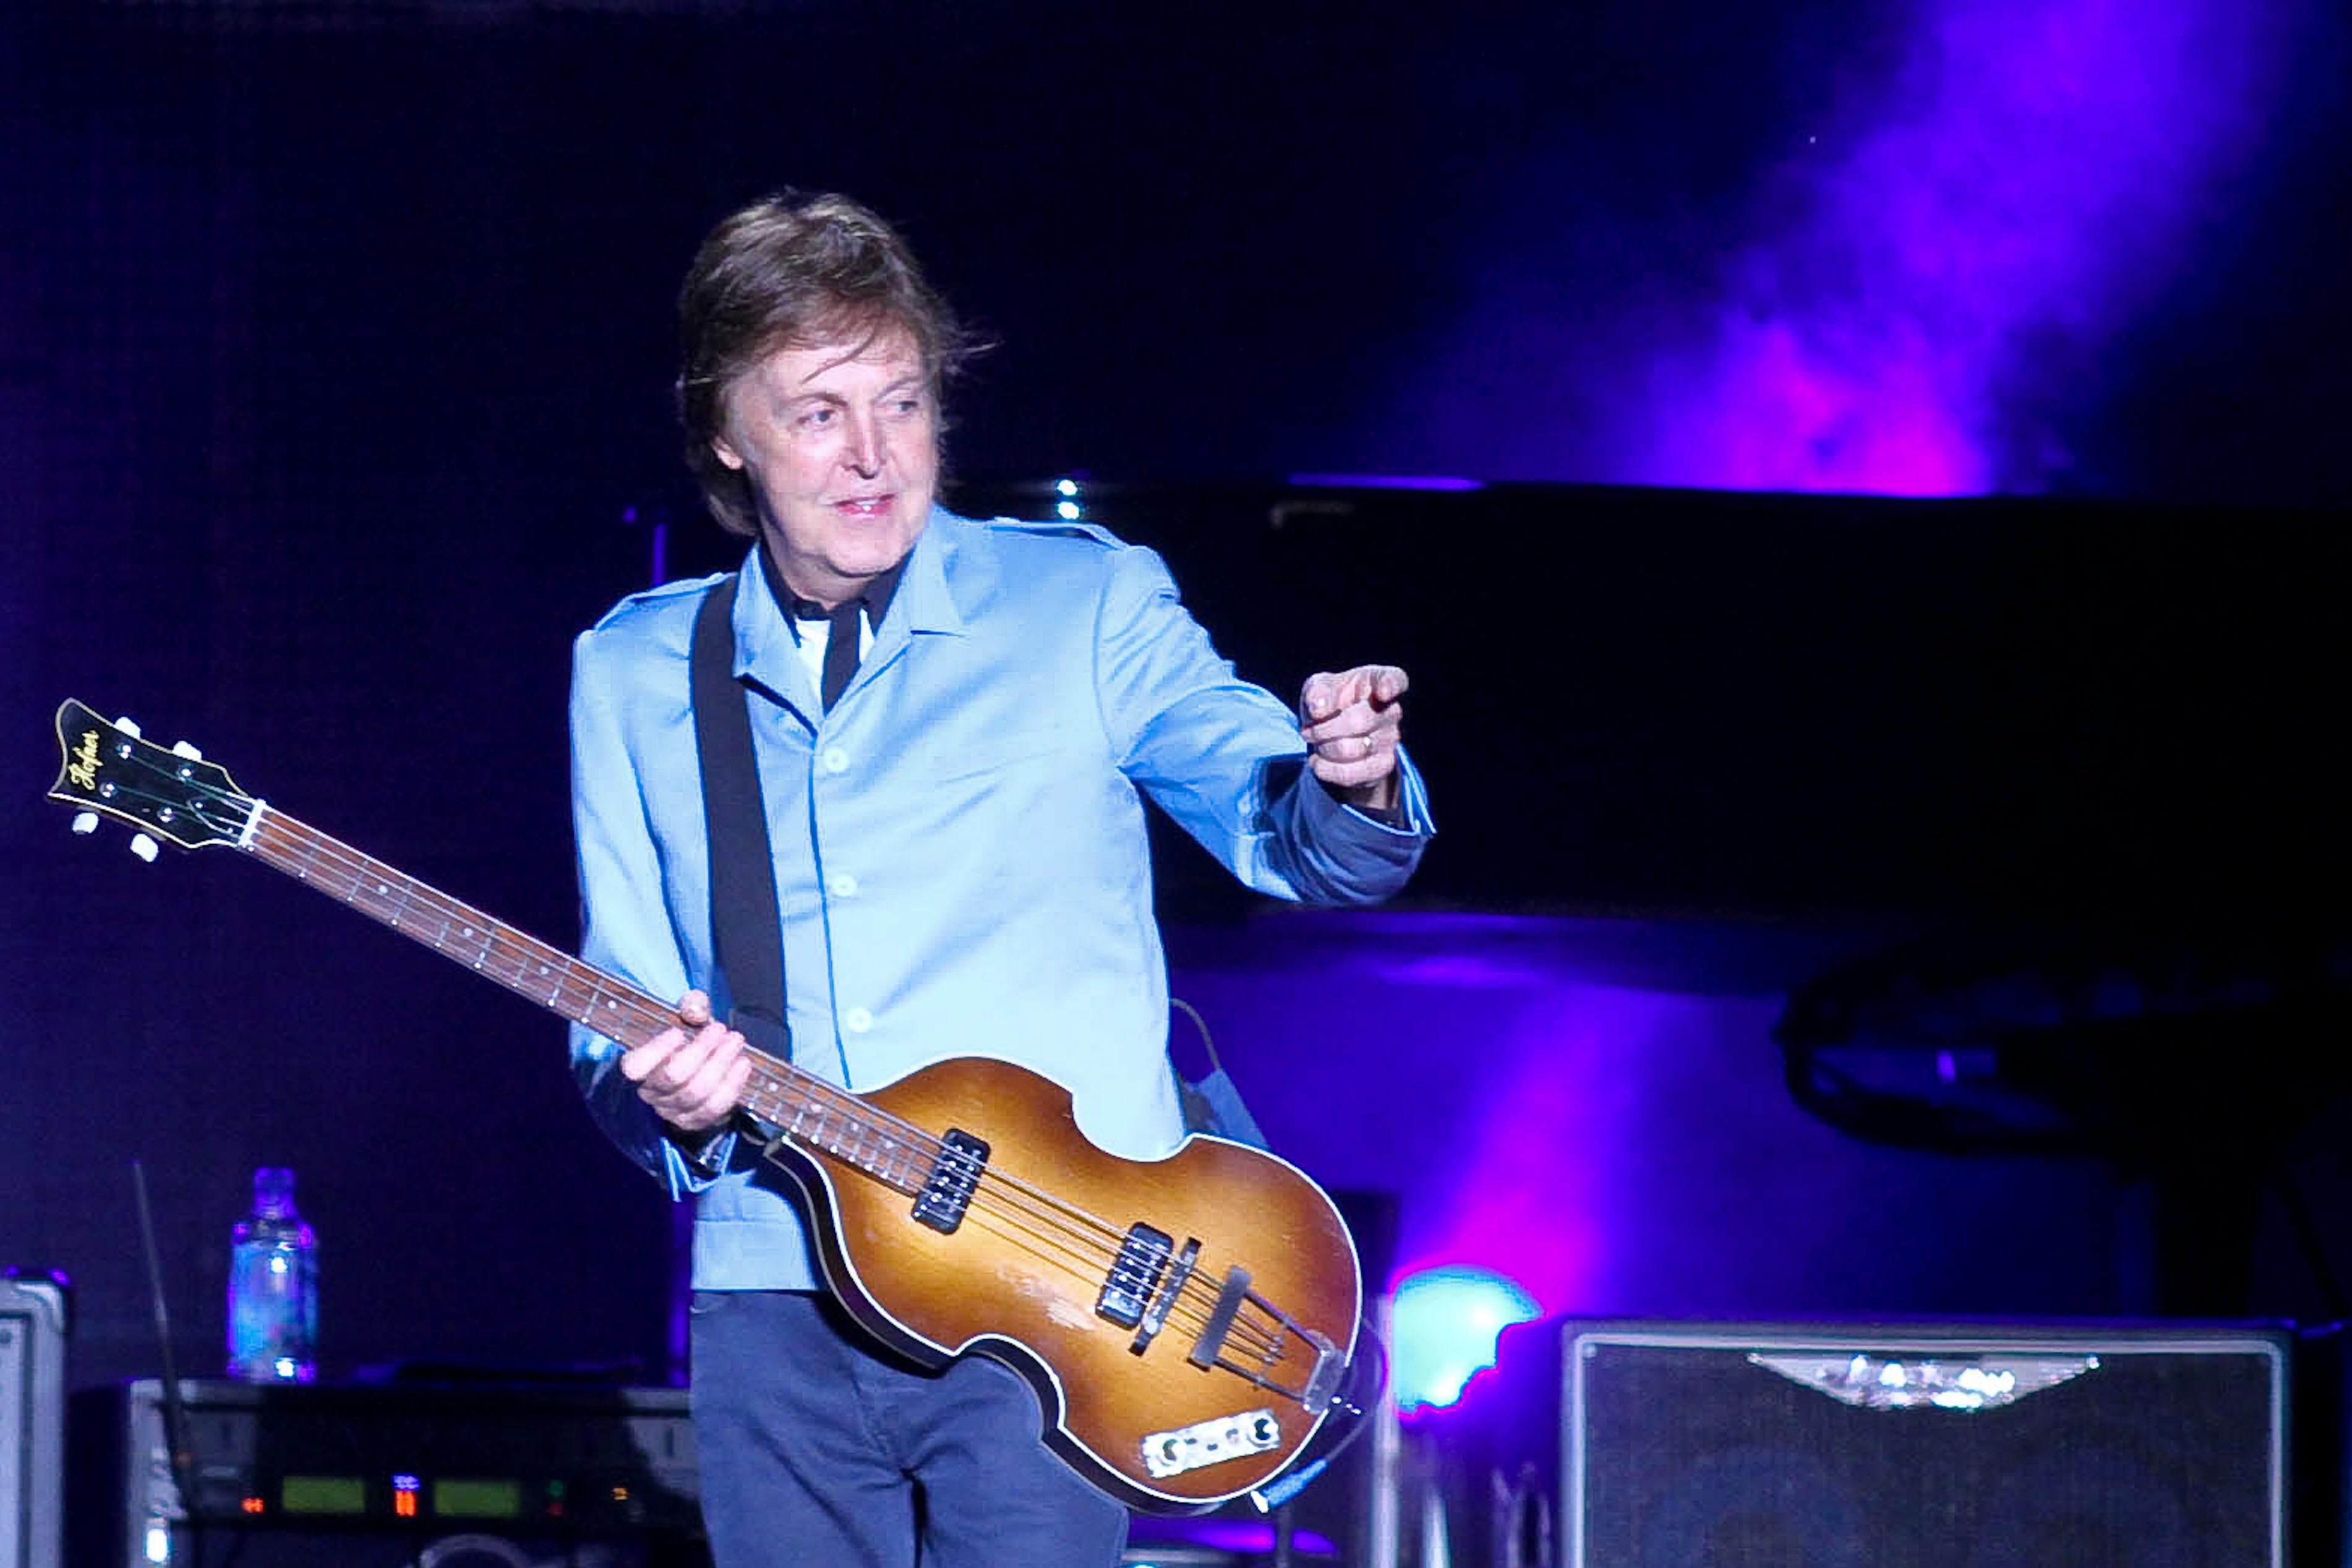 Paul McCartney unveils latest single New ahead of identically-titled album